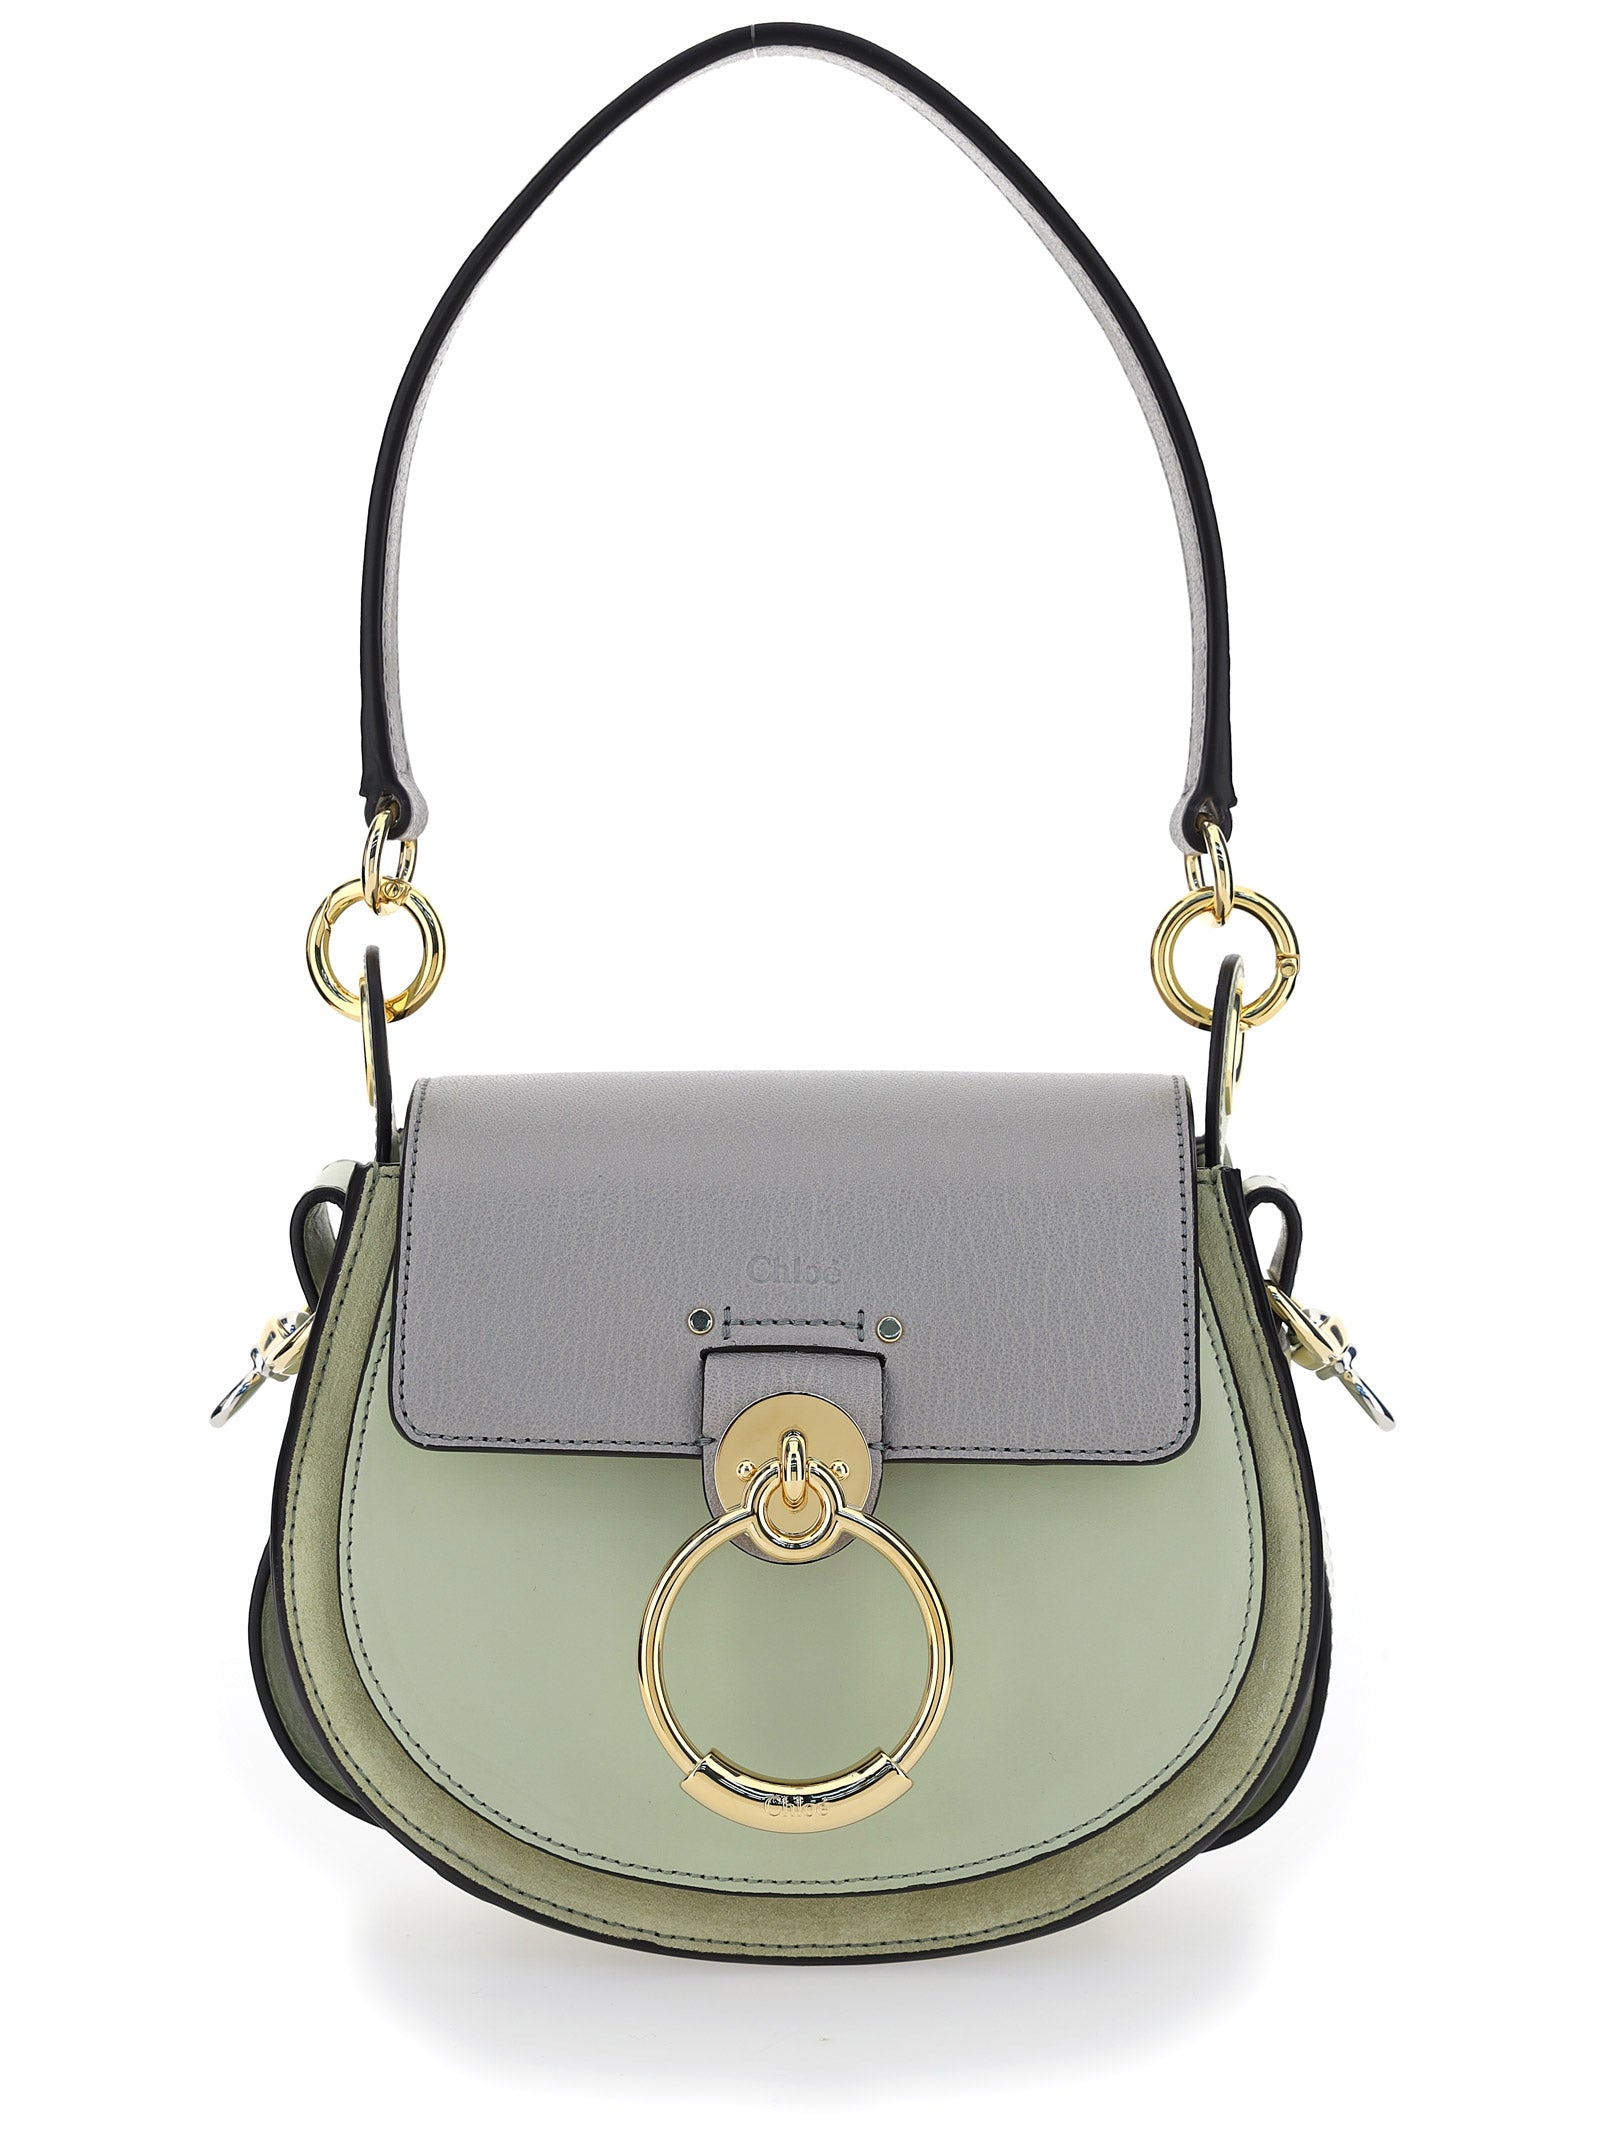 Chloé CHLOÉ TESS SMALL SHOULDER BAG